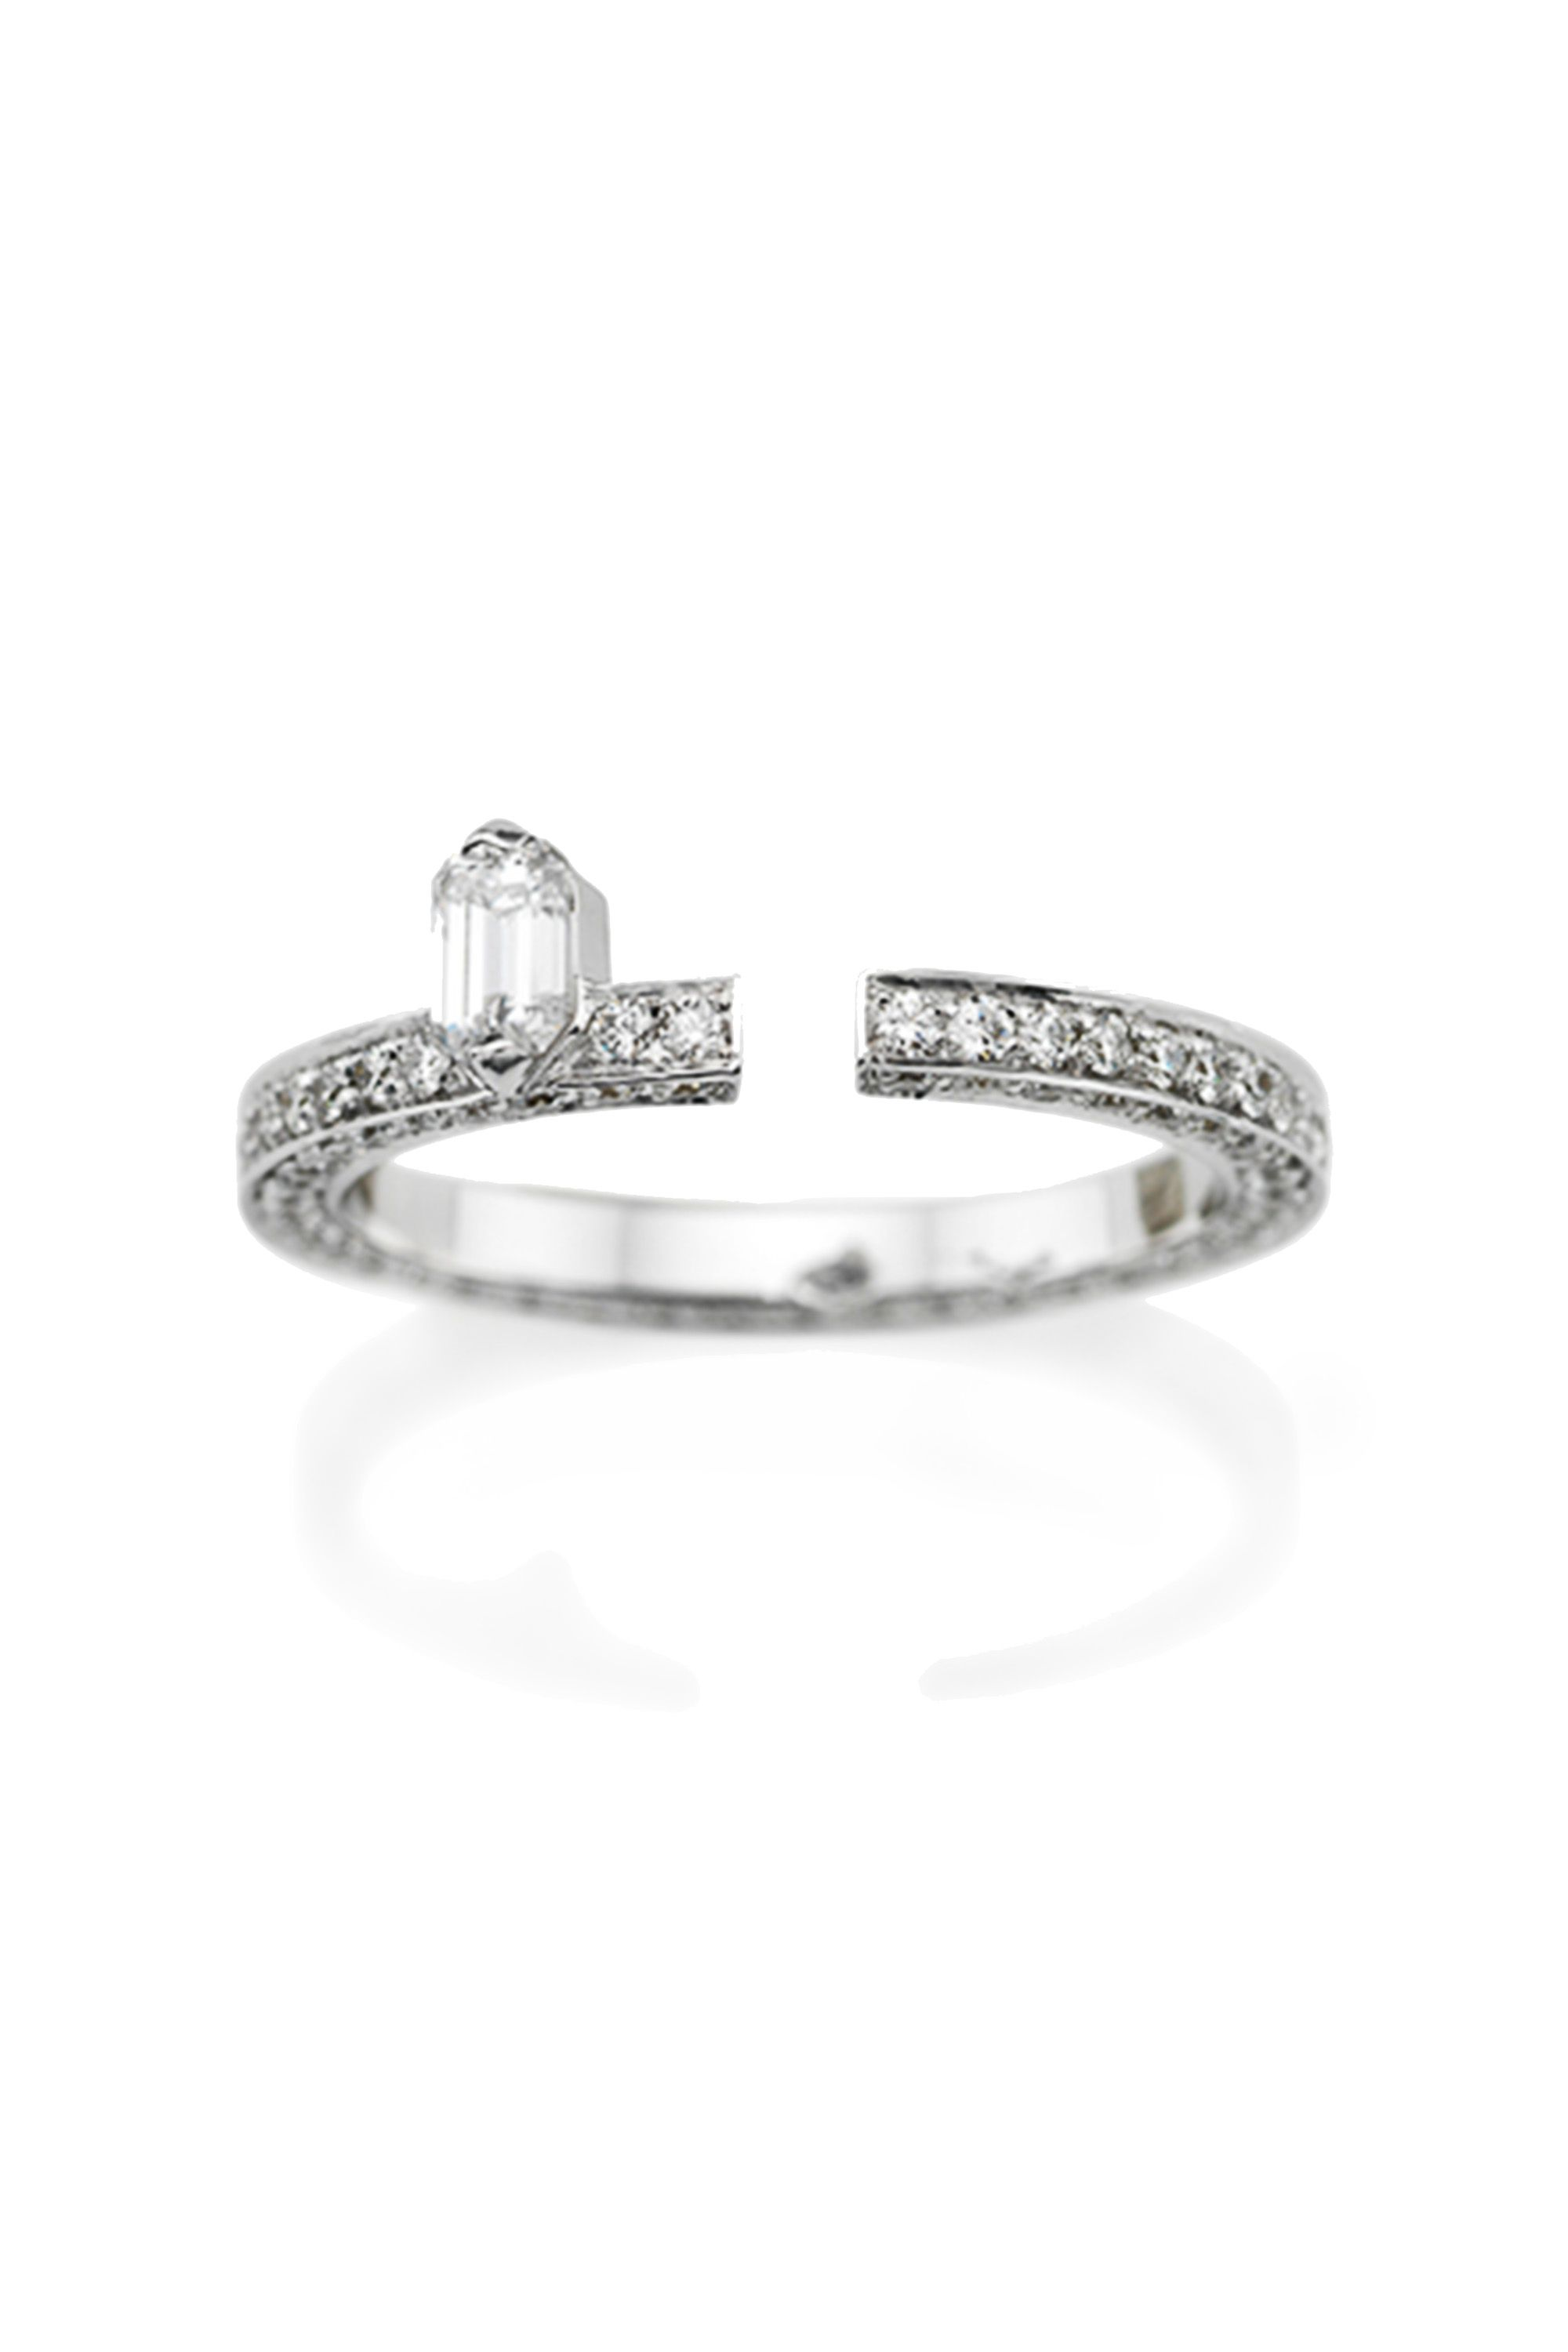 show please your page rings with weddingbee me solitaire pin band wedding an eternity diamond